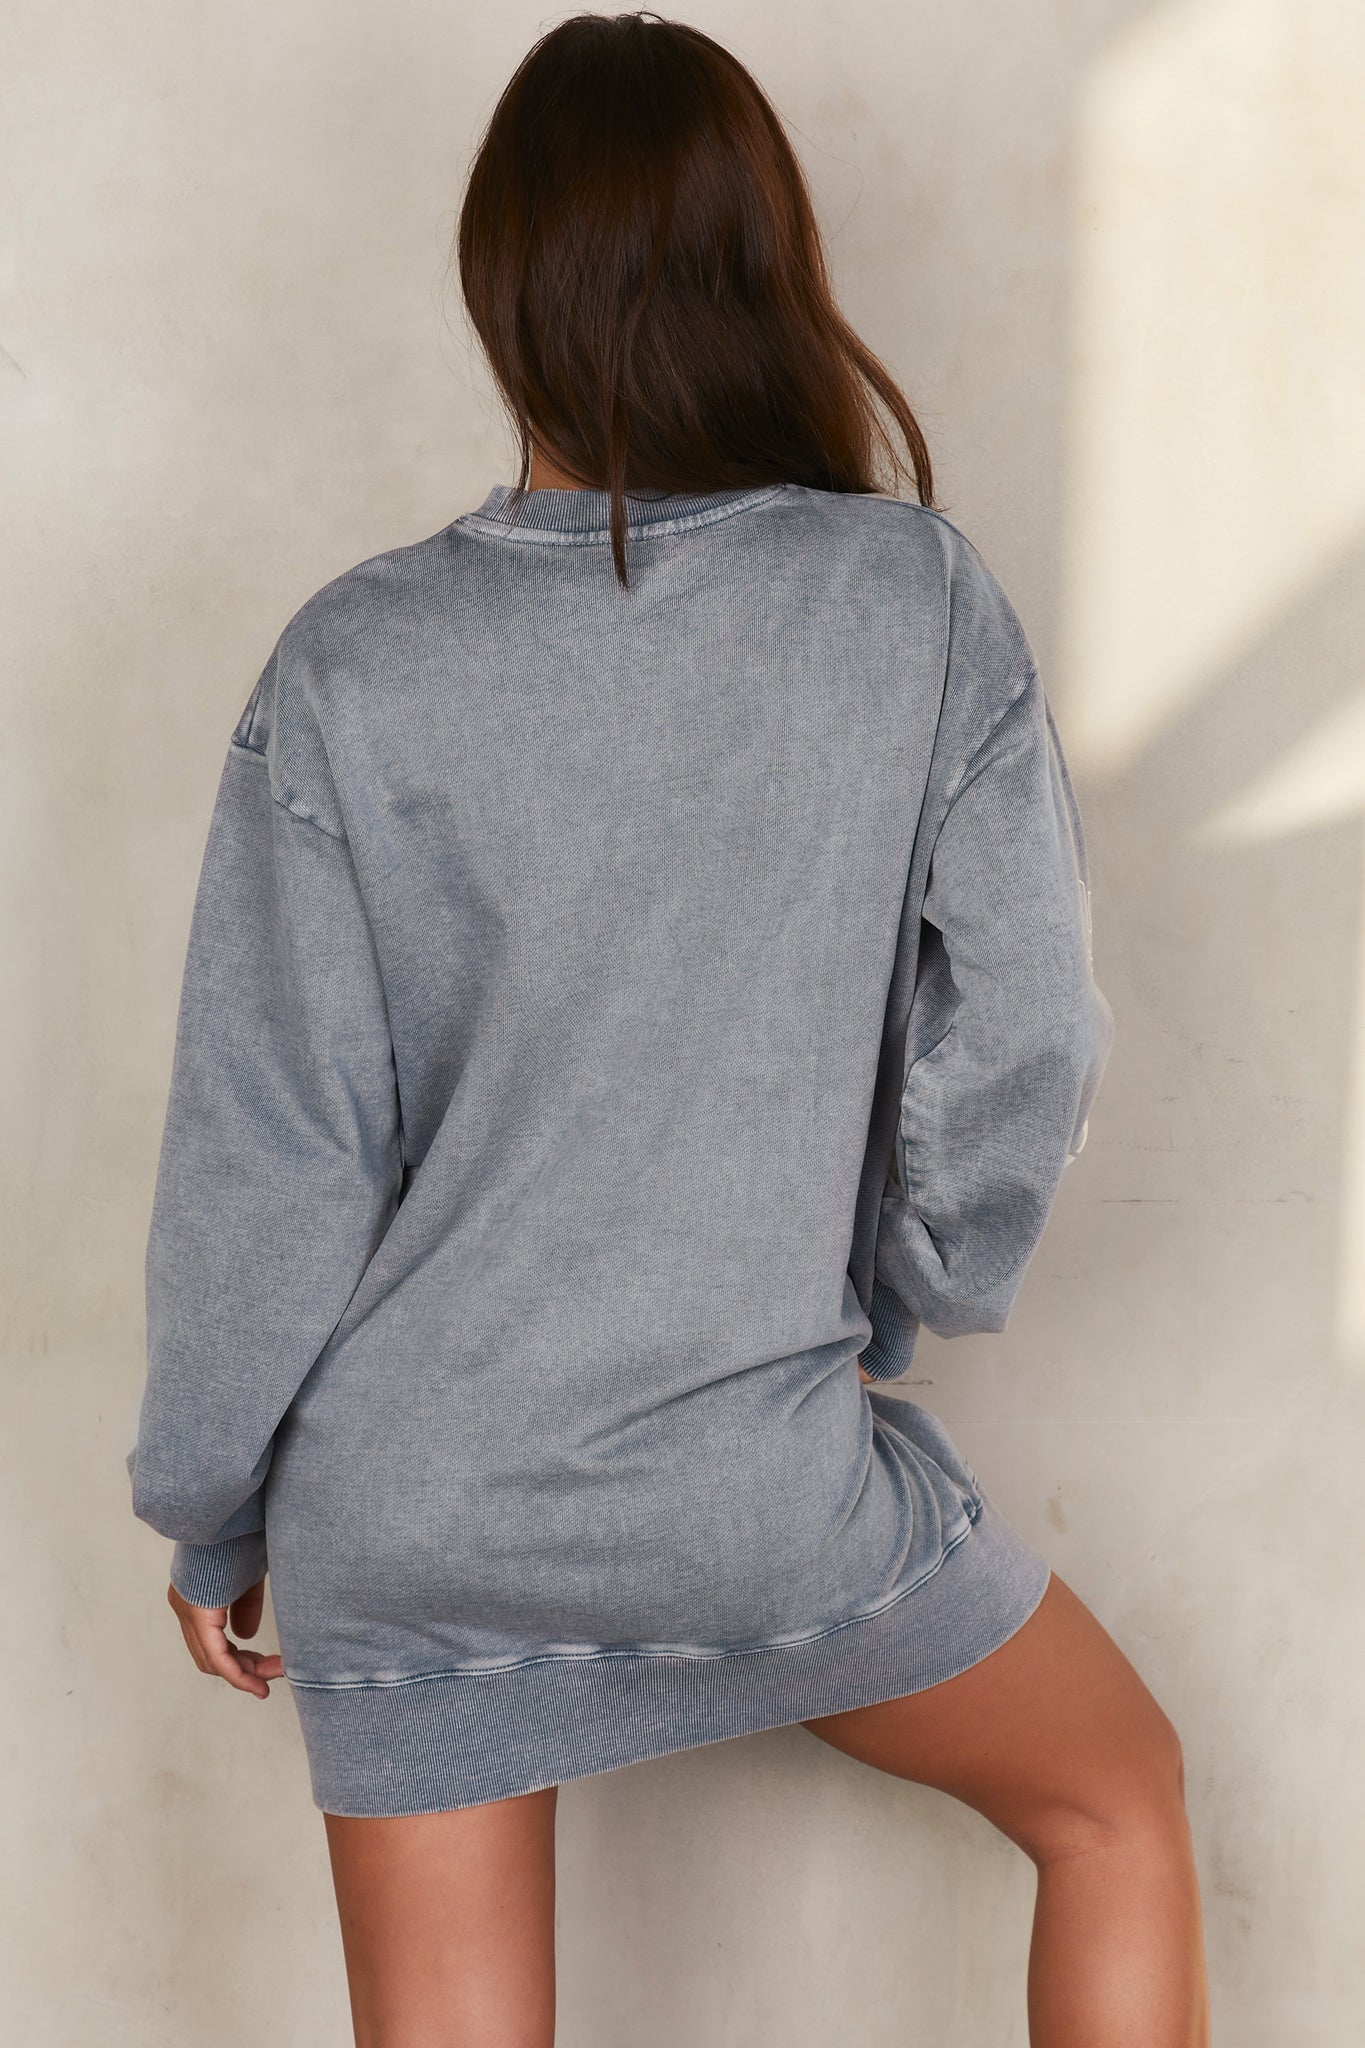 React - Sweatshirt in Charcoal